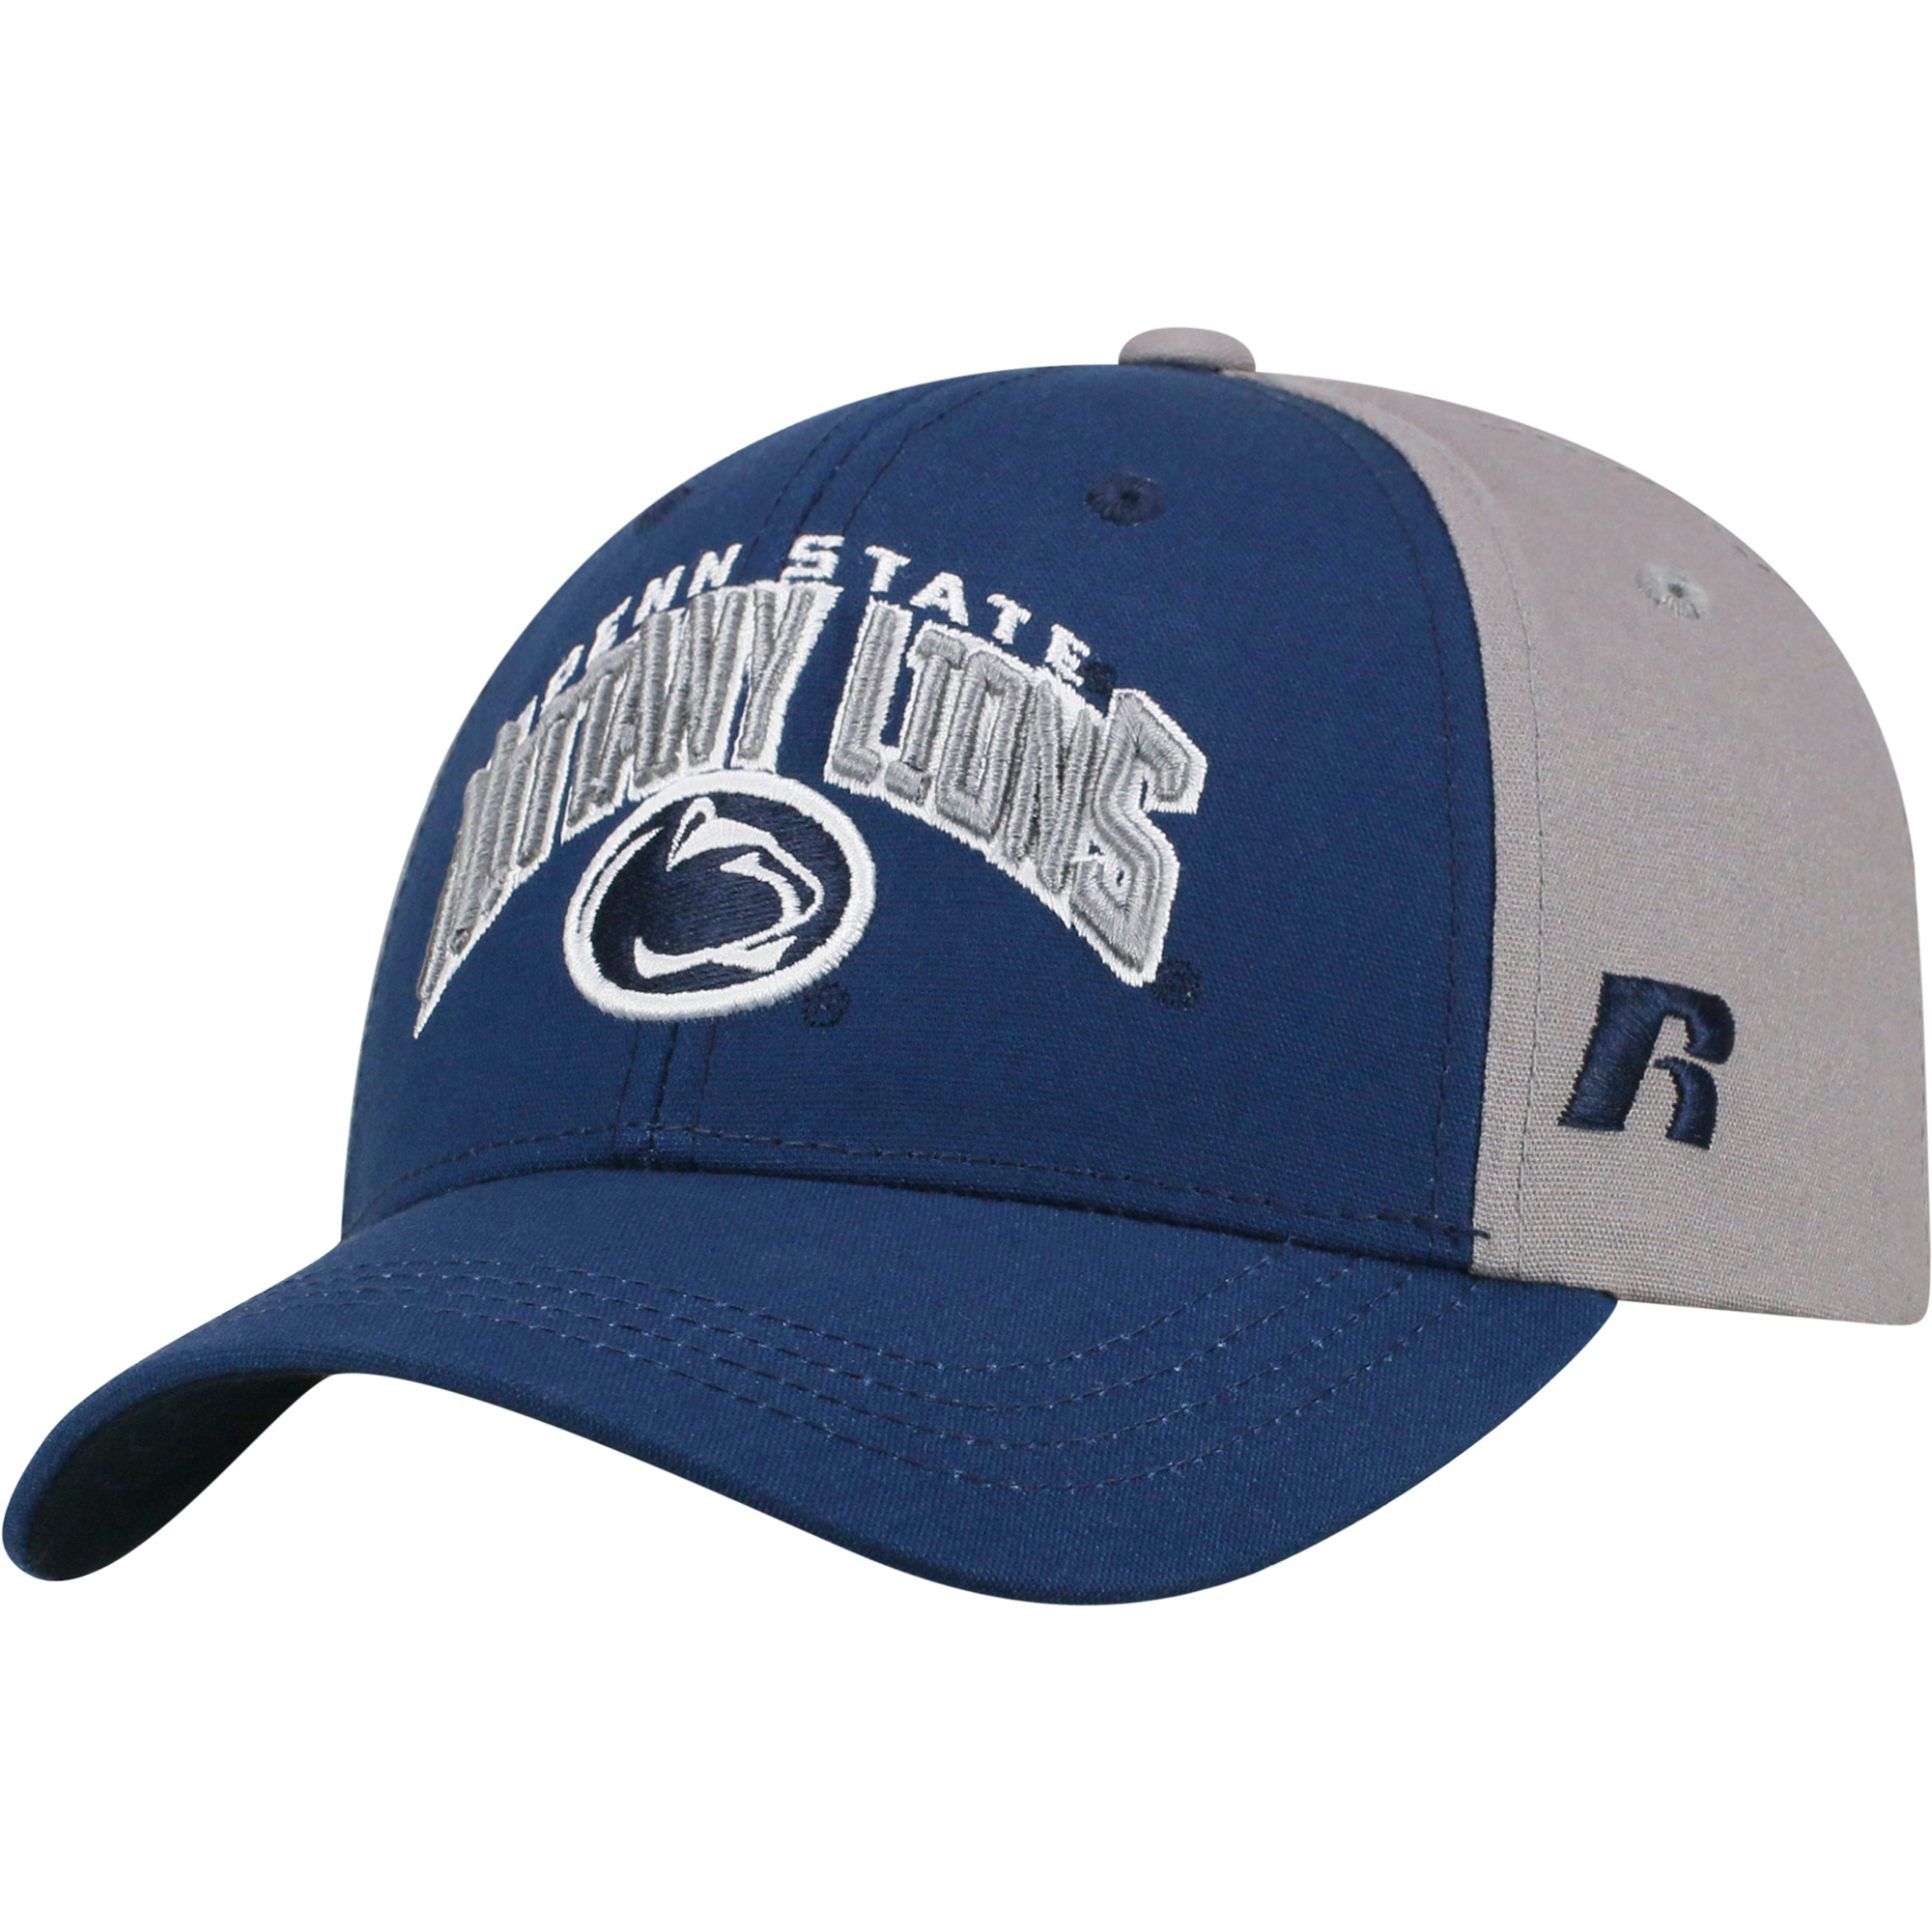 Youth Russell Navy/Gray Penn State Nittany Lions Tastic Adjustable Hat - OSFA